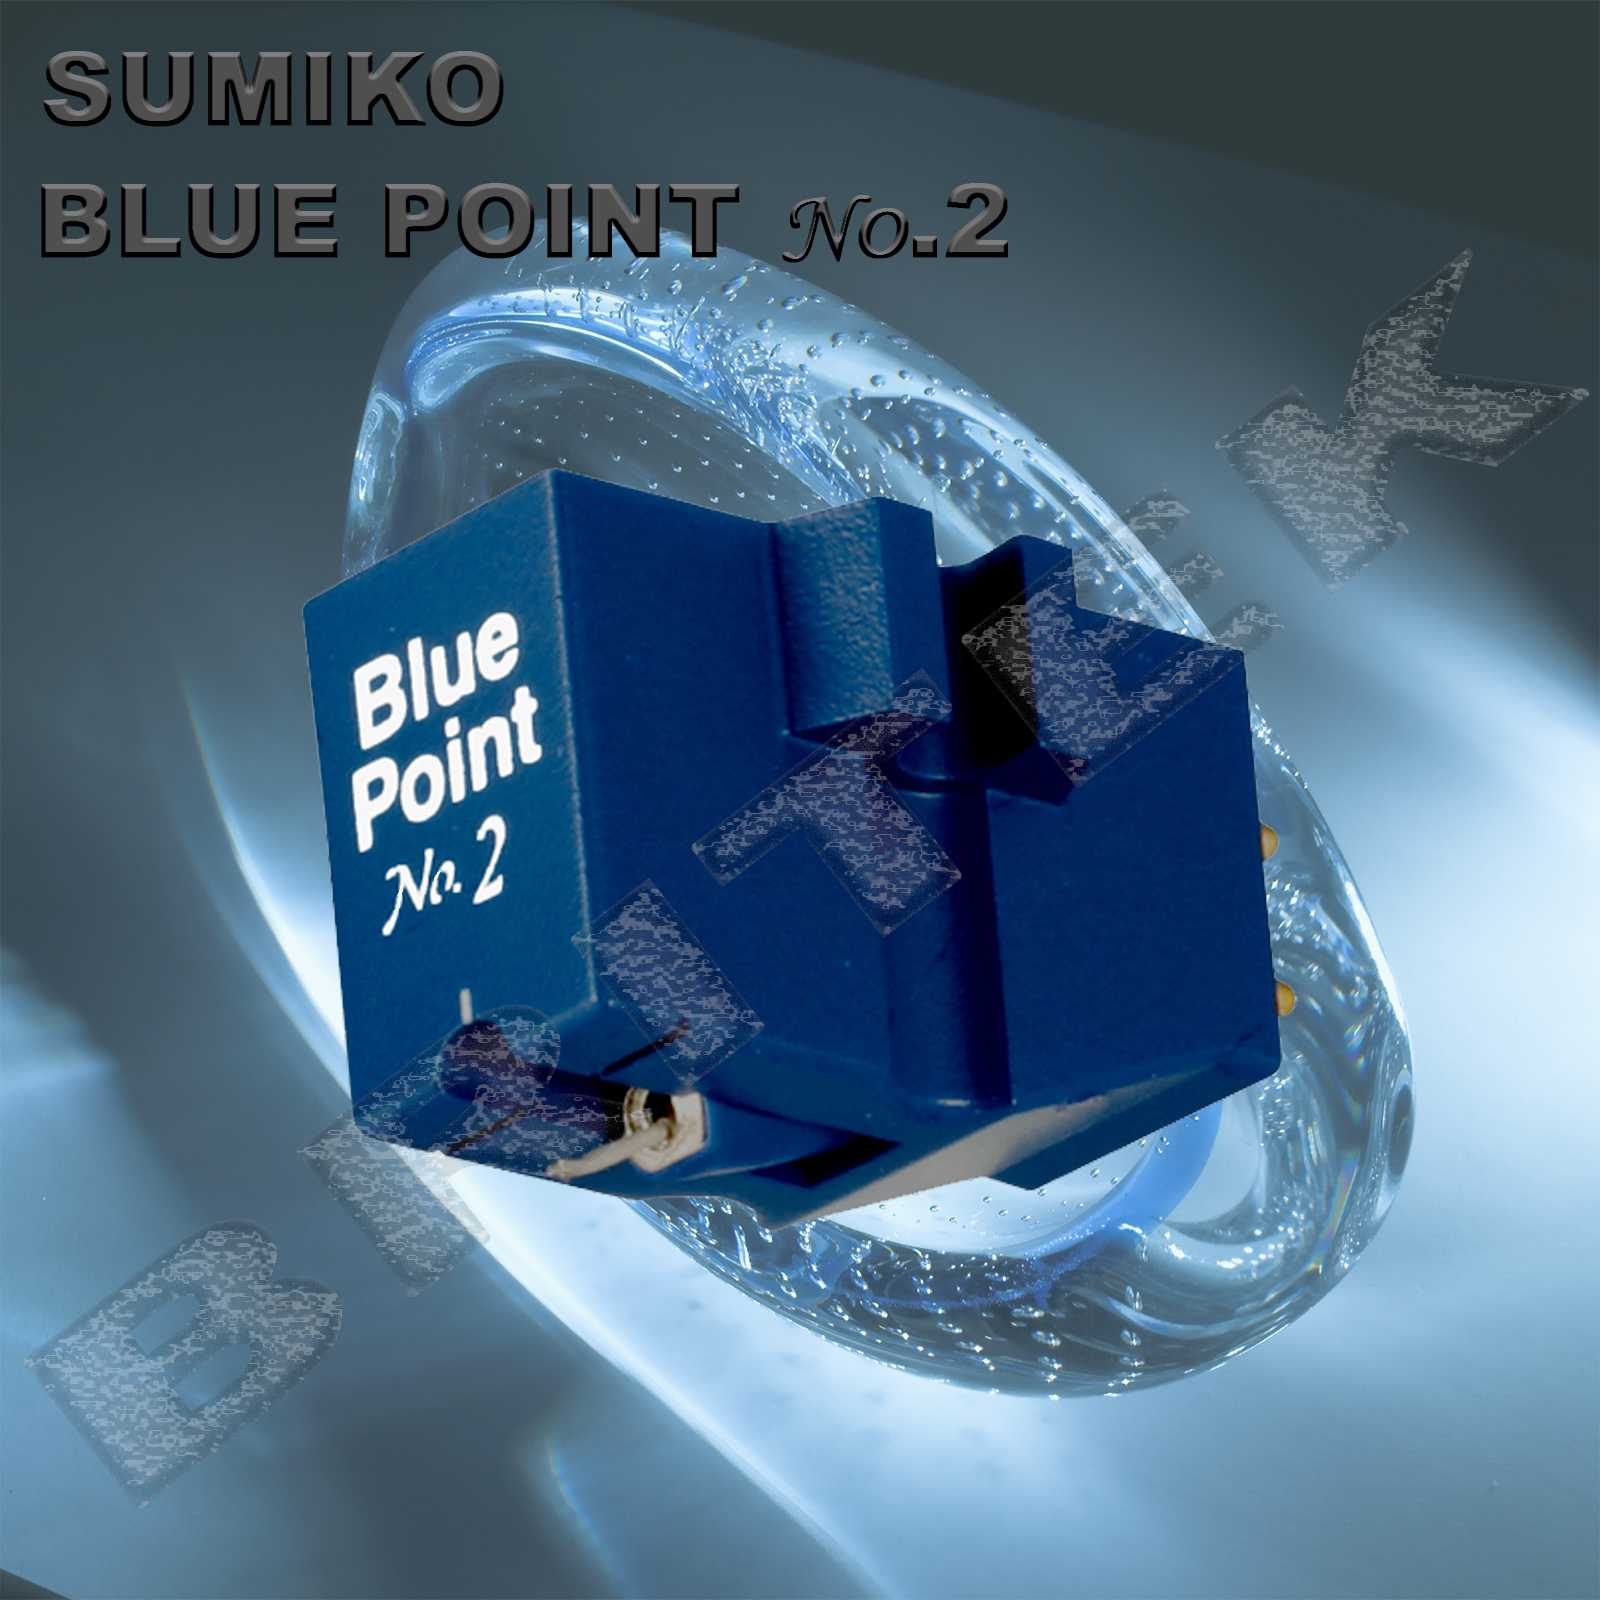 SUMIKO- BLUE POINT no.2